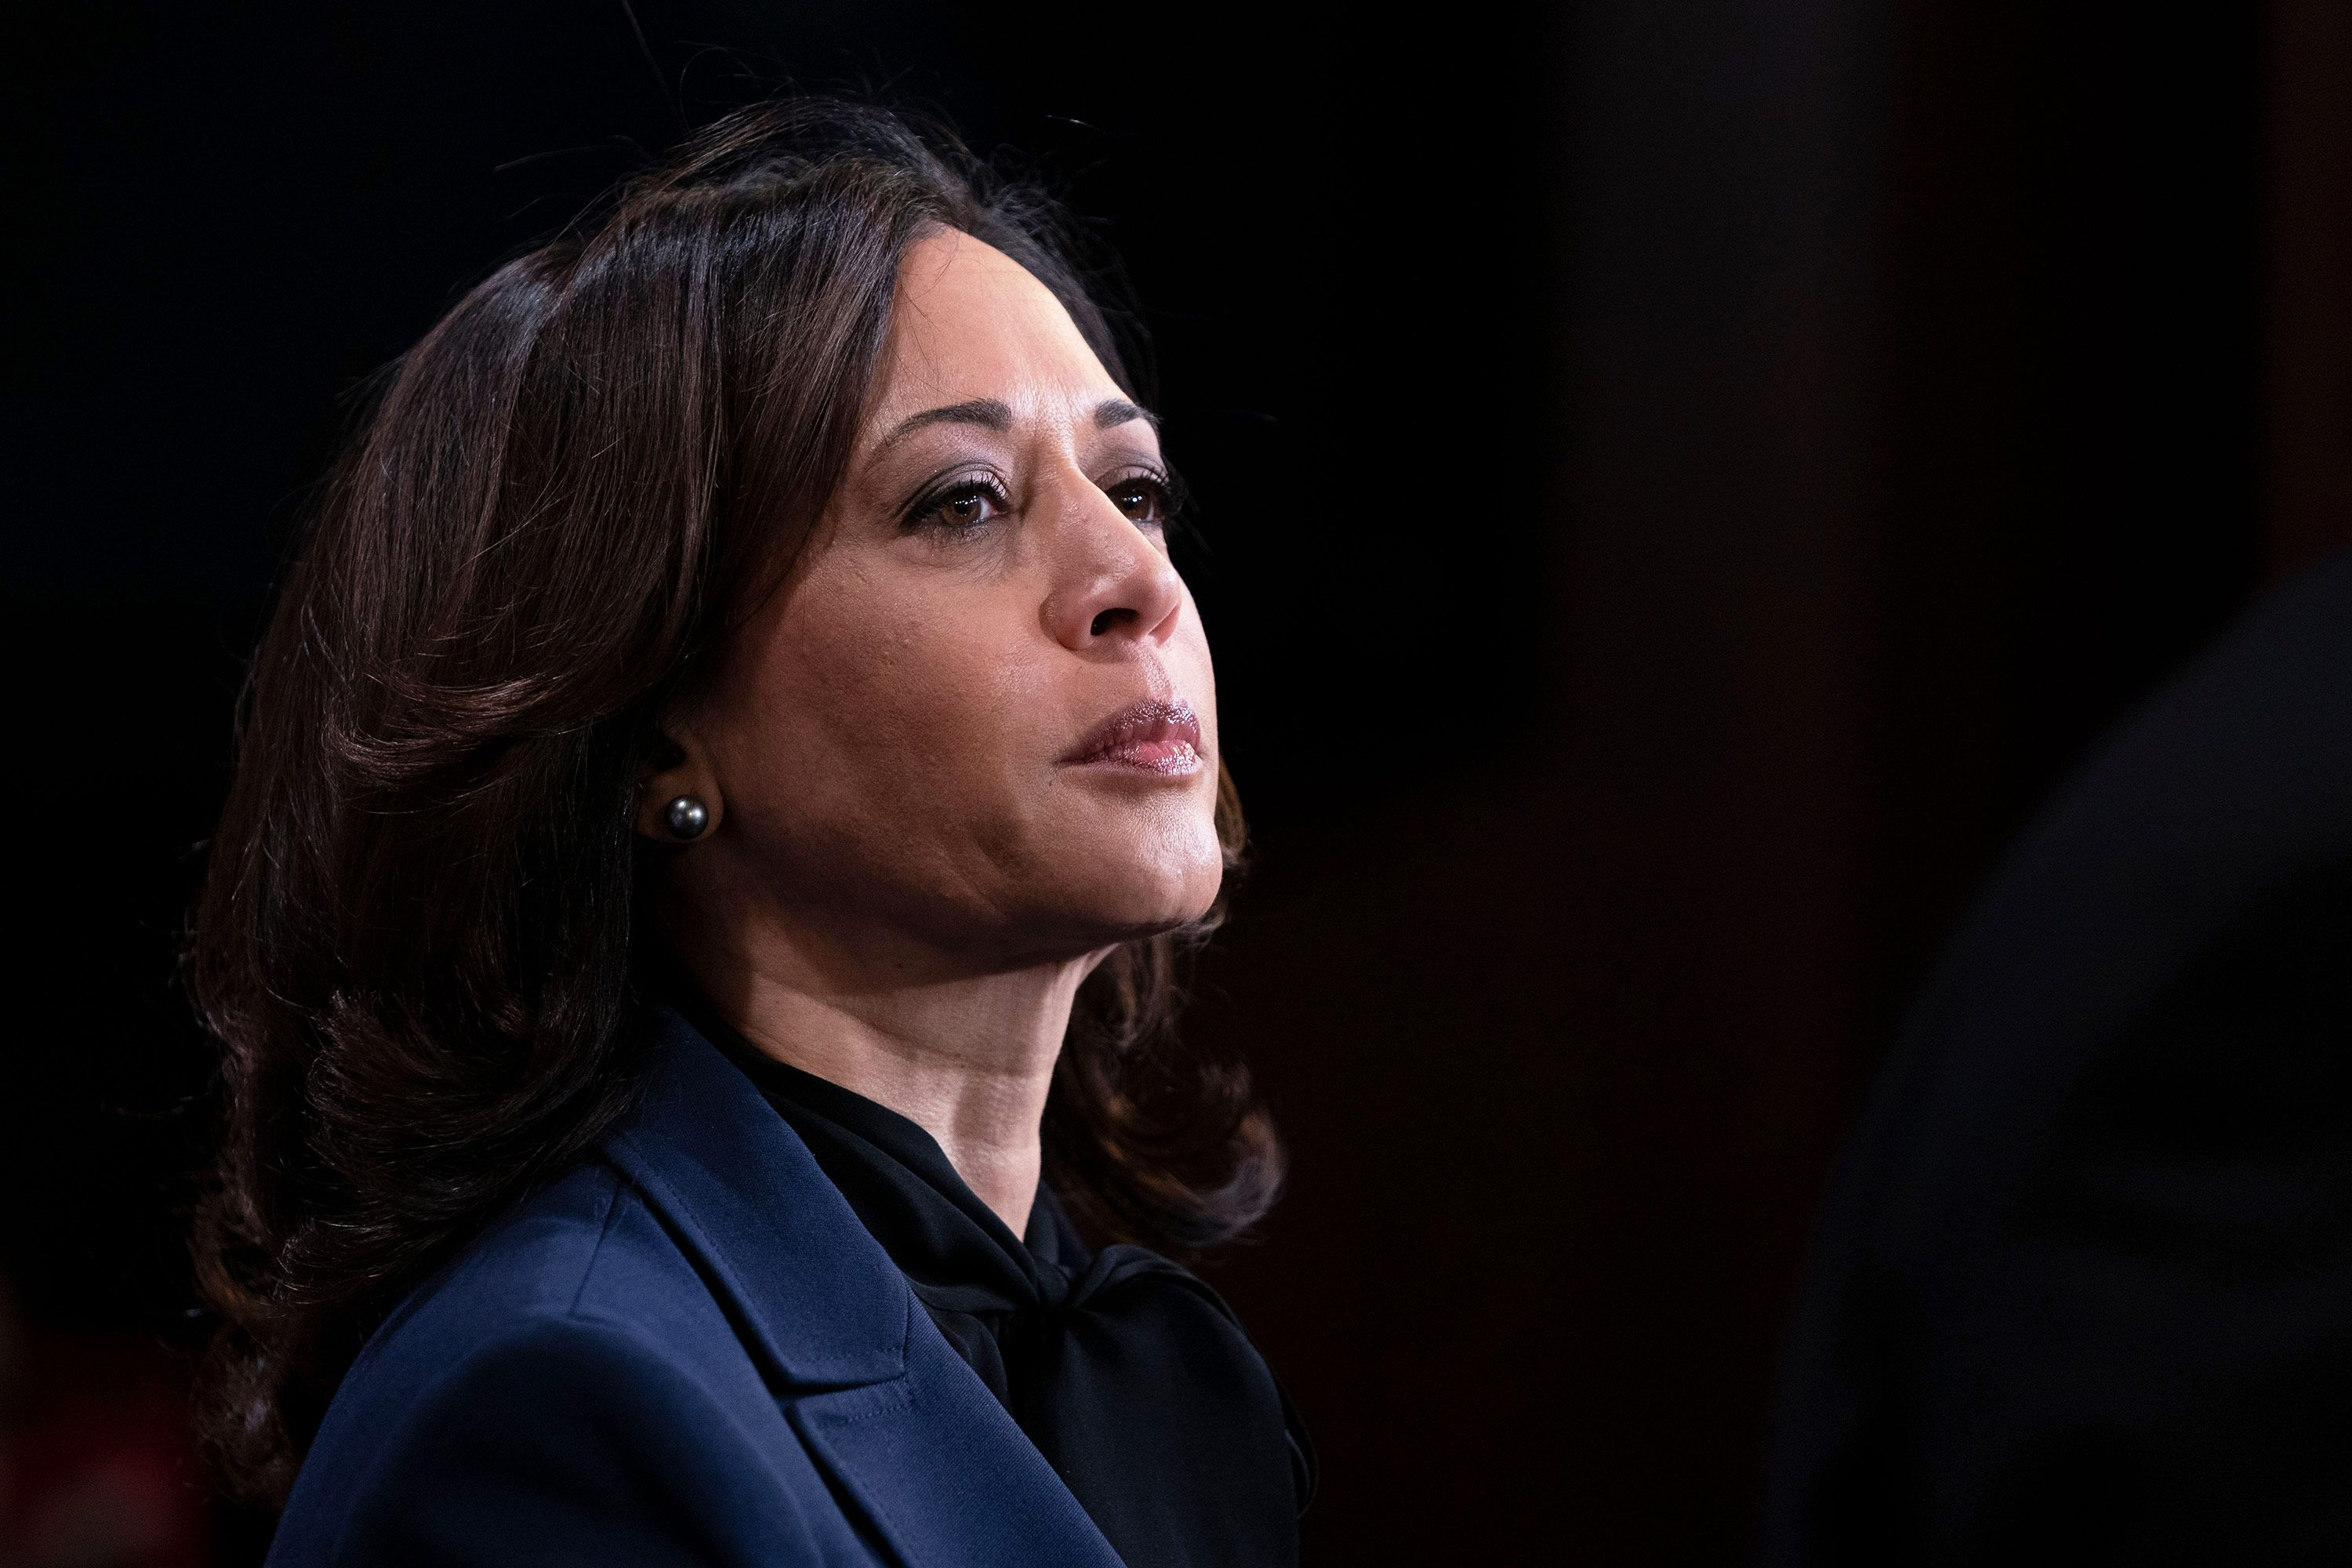 , Kamala Harris will be responsible for asking Mike Pence on live TV if they need a chaperone., The Politicus